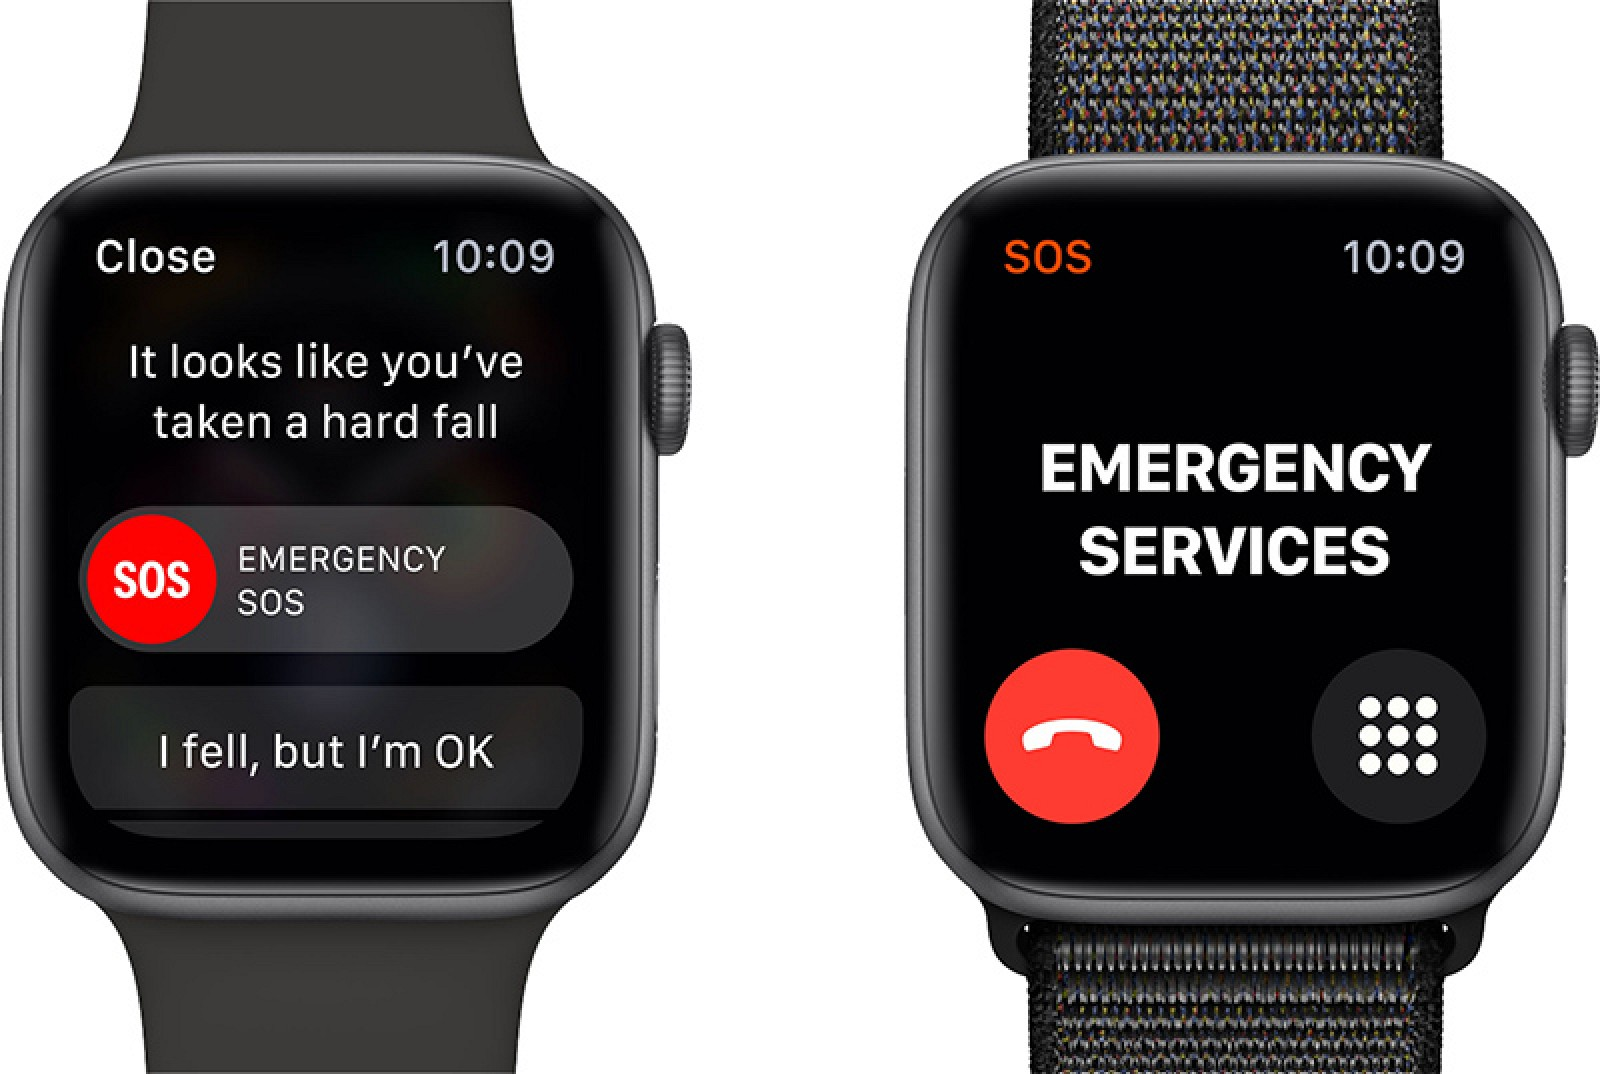 Apple Watch Series 4 Fall Detection Feature is Off by